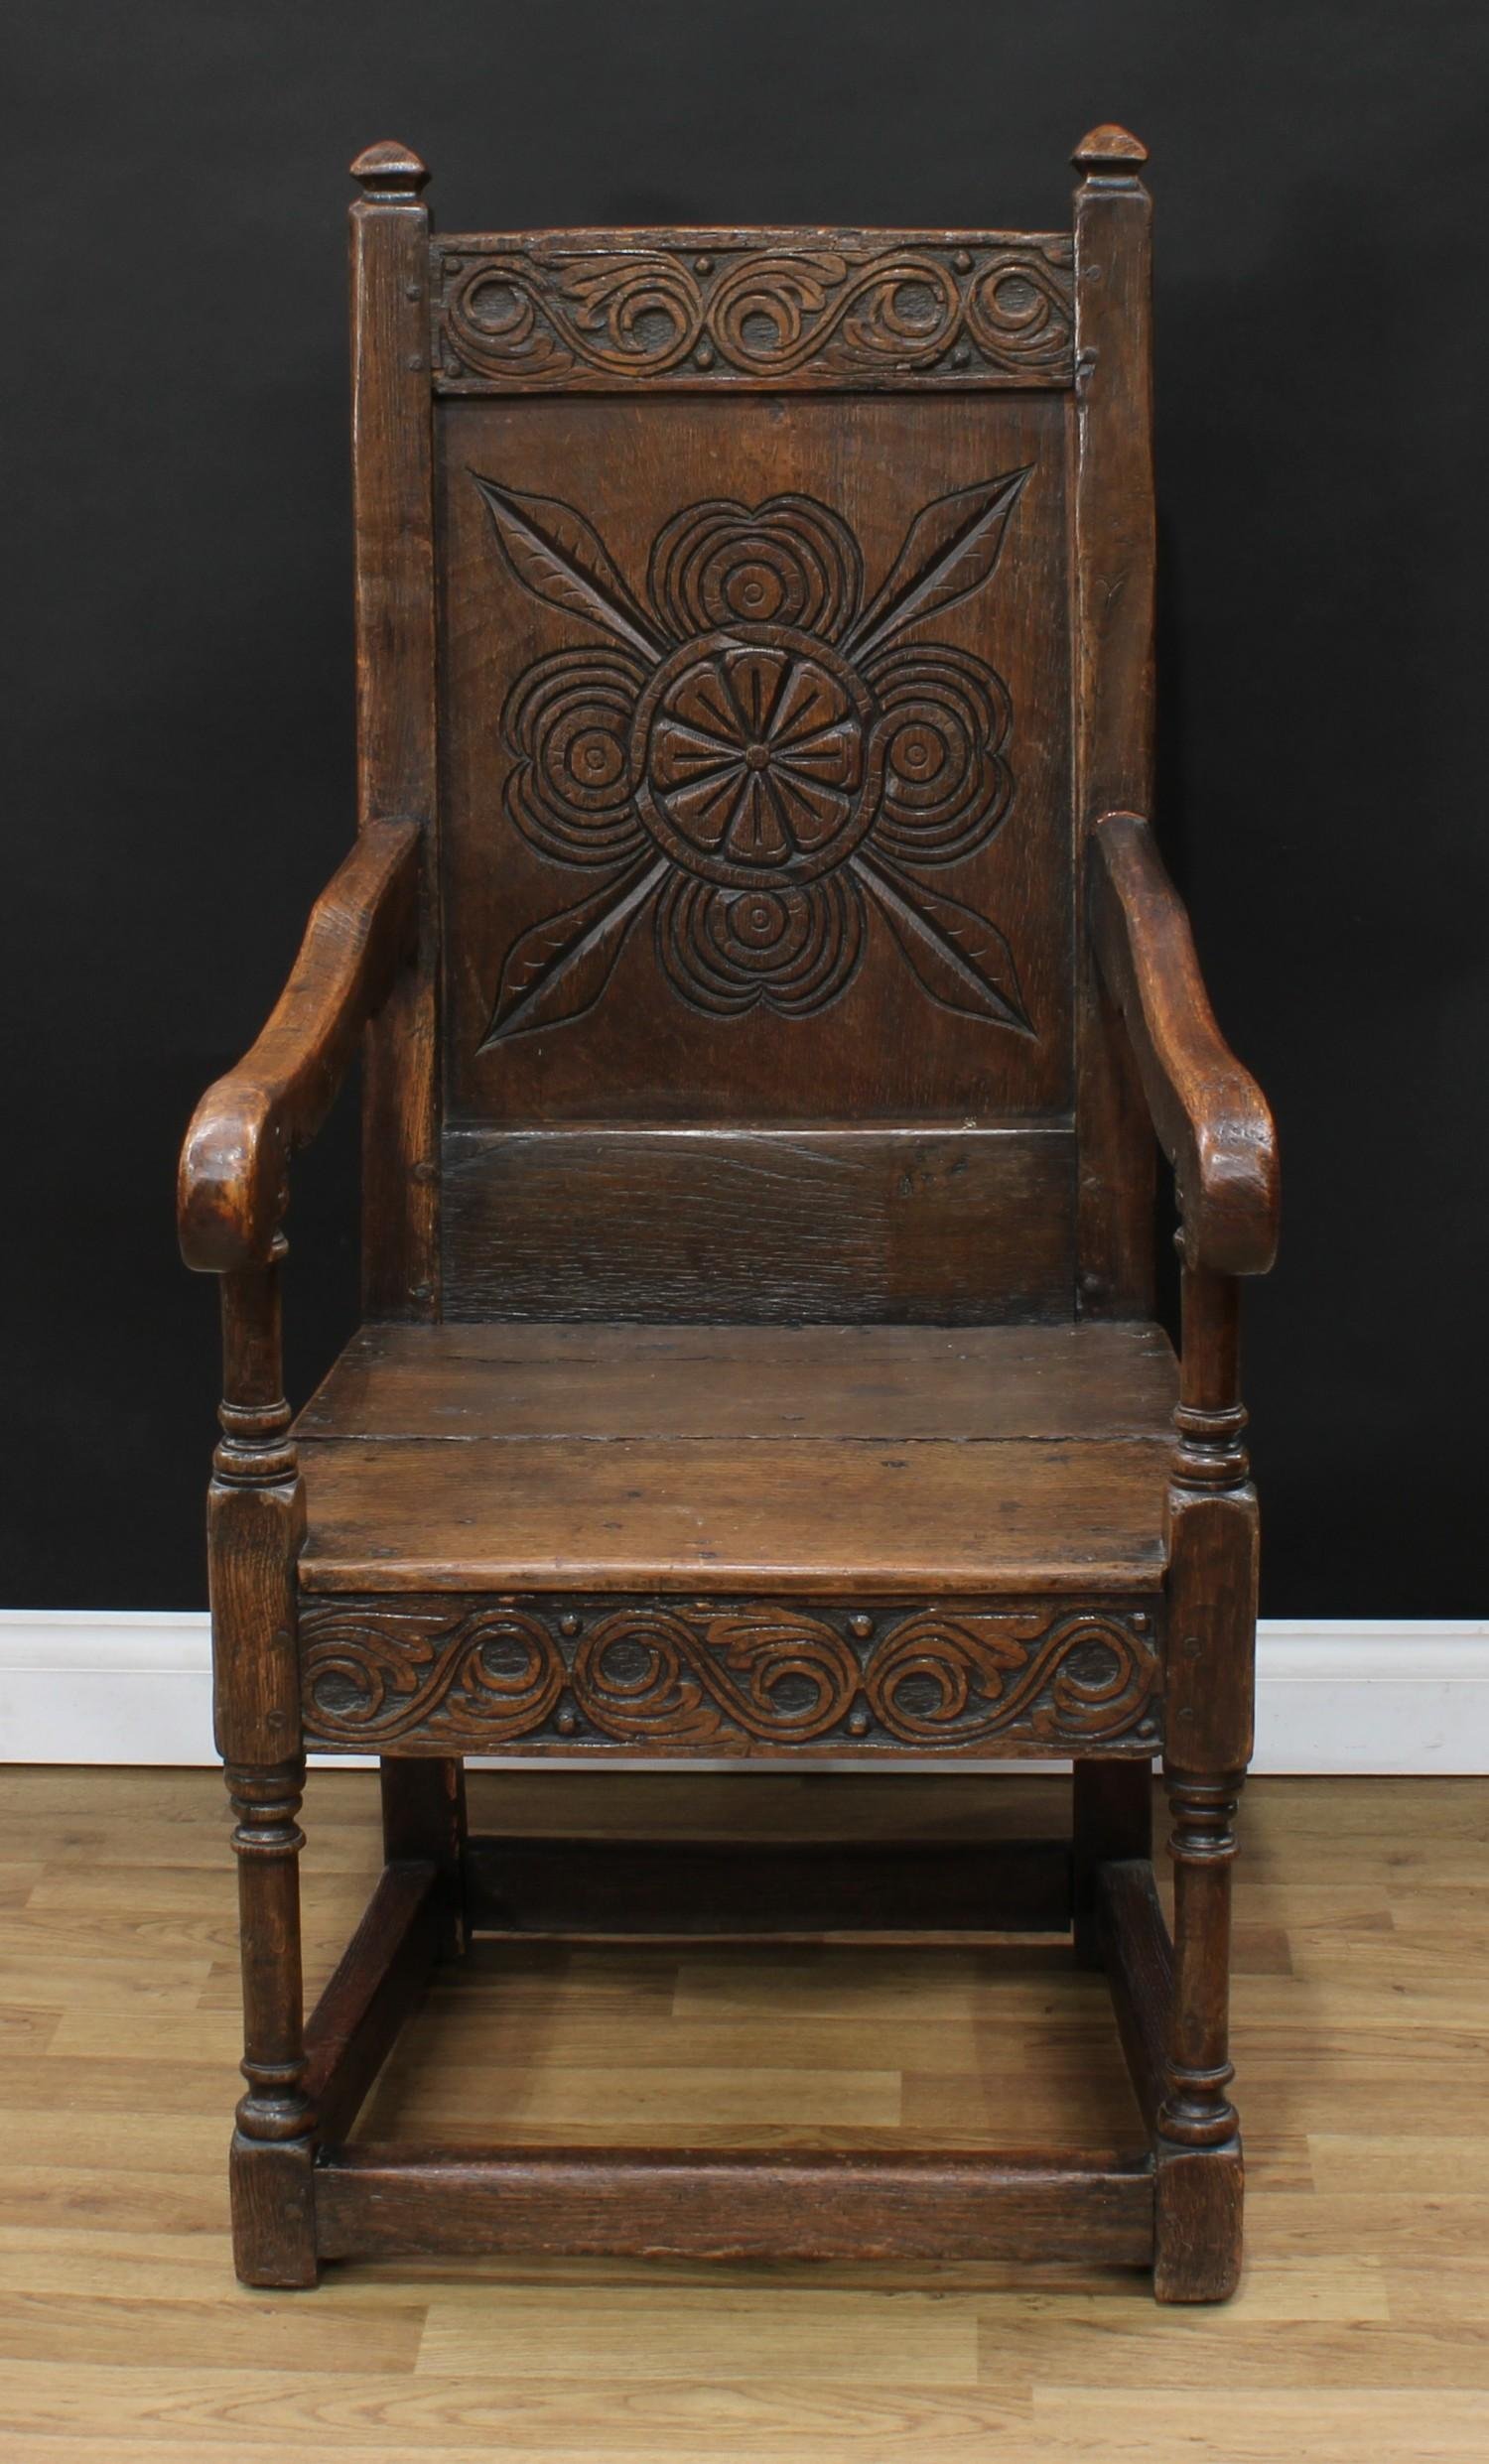 An 18th century oak Wainscot armchair, possibly Cheshire, rectangular cresting rail carved with - Image 2 of 4